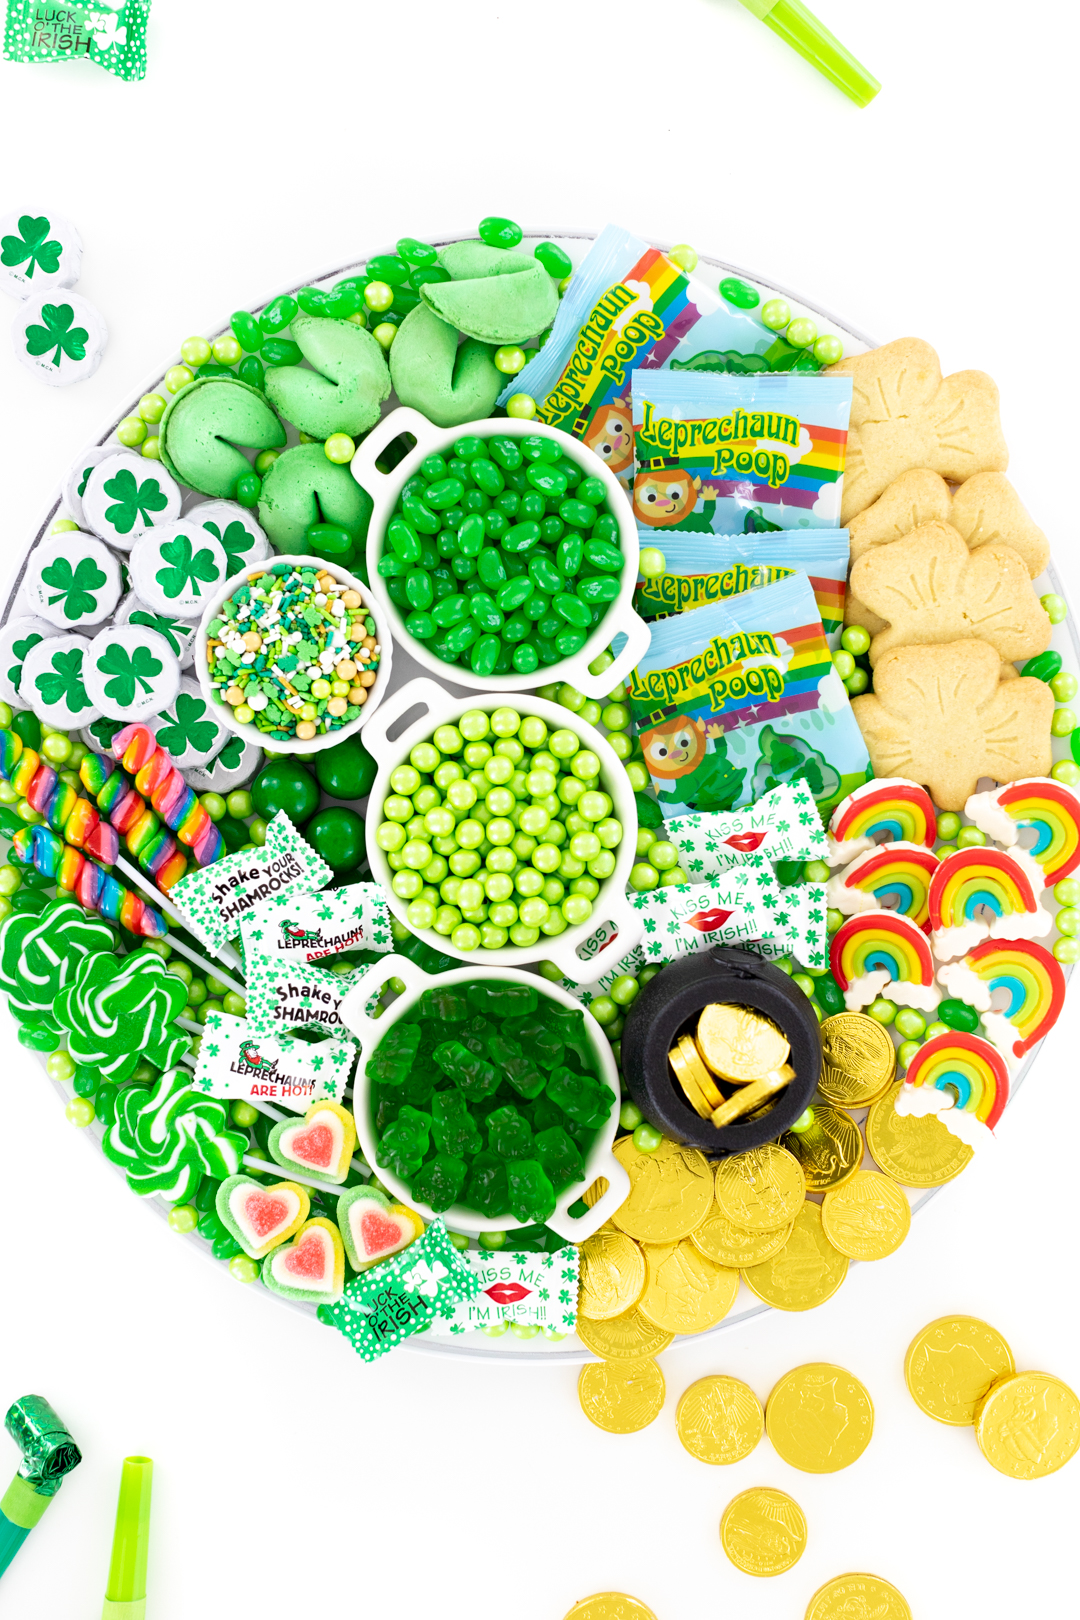 St. Patrick's Day candy board with green, rainbow and gold candies.